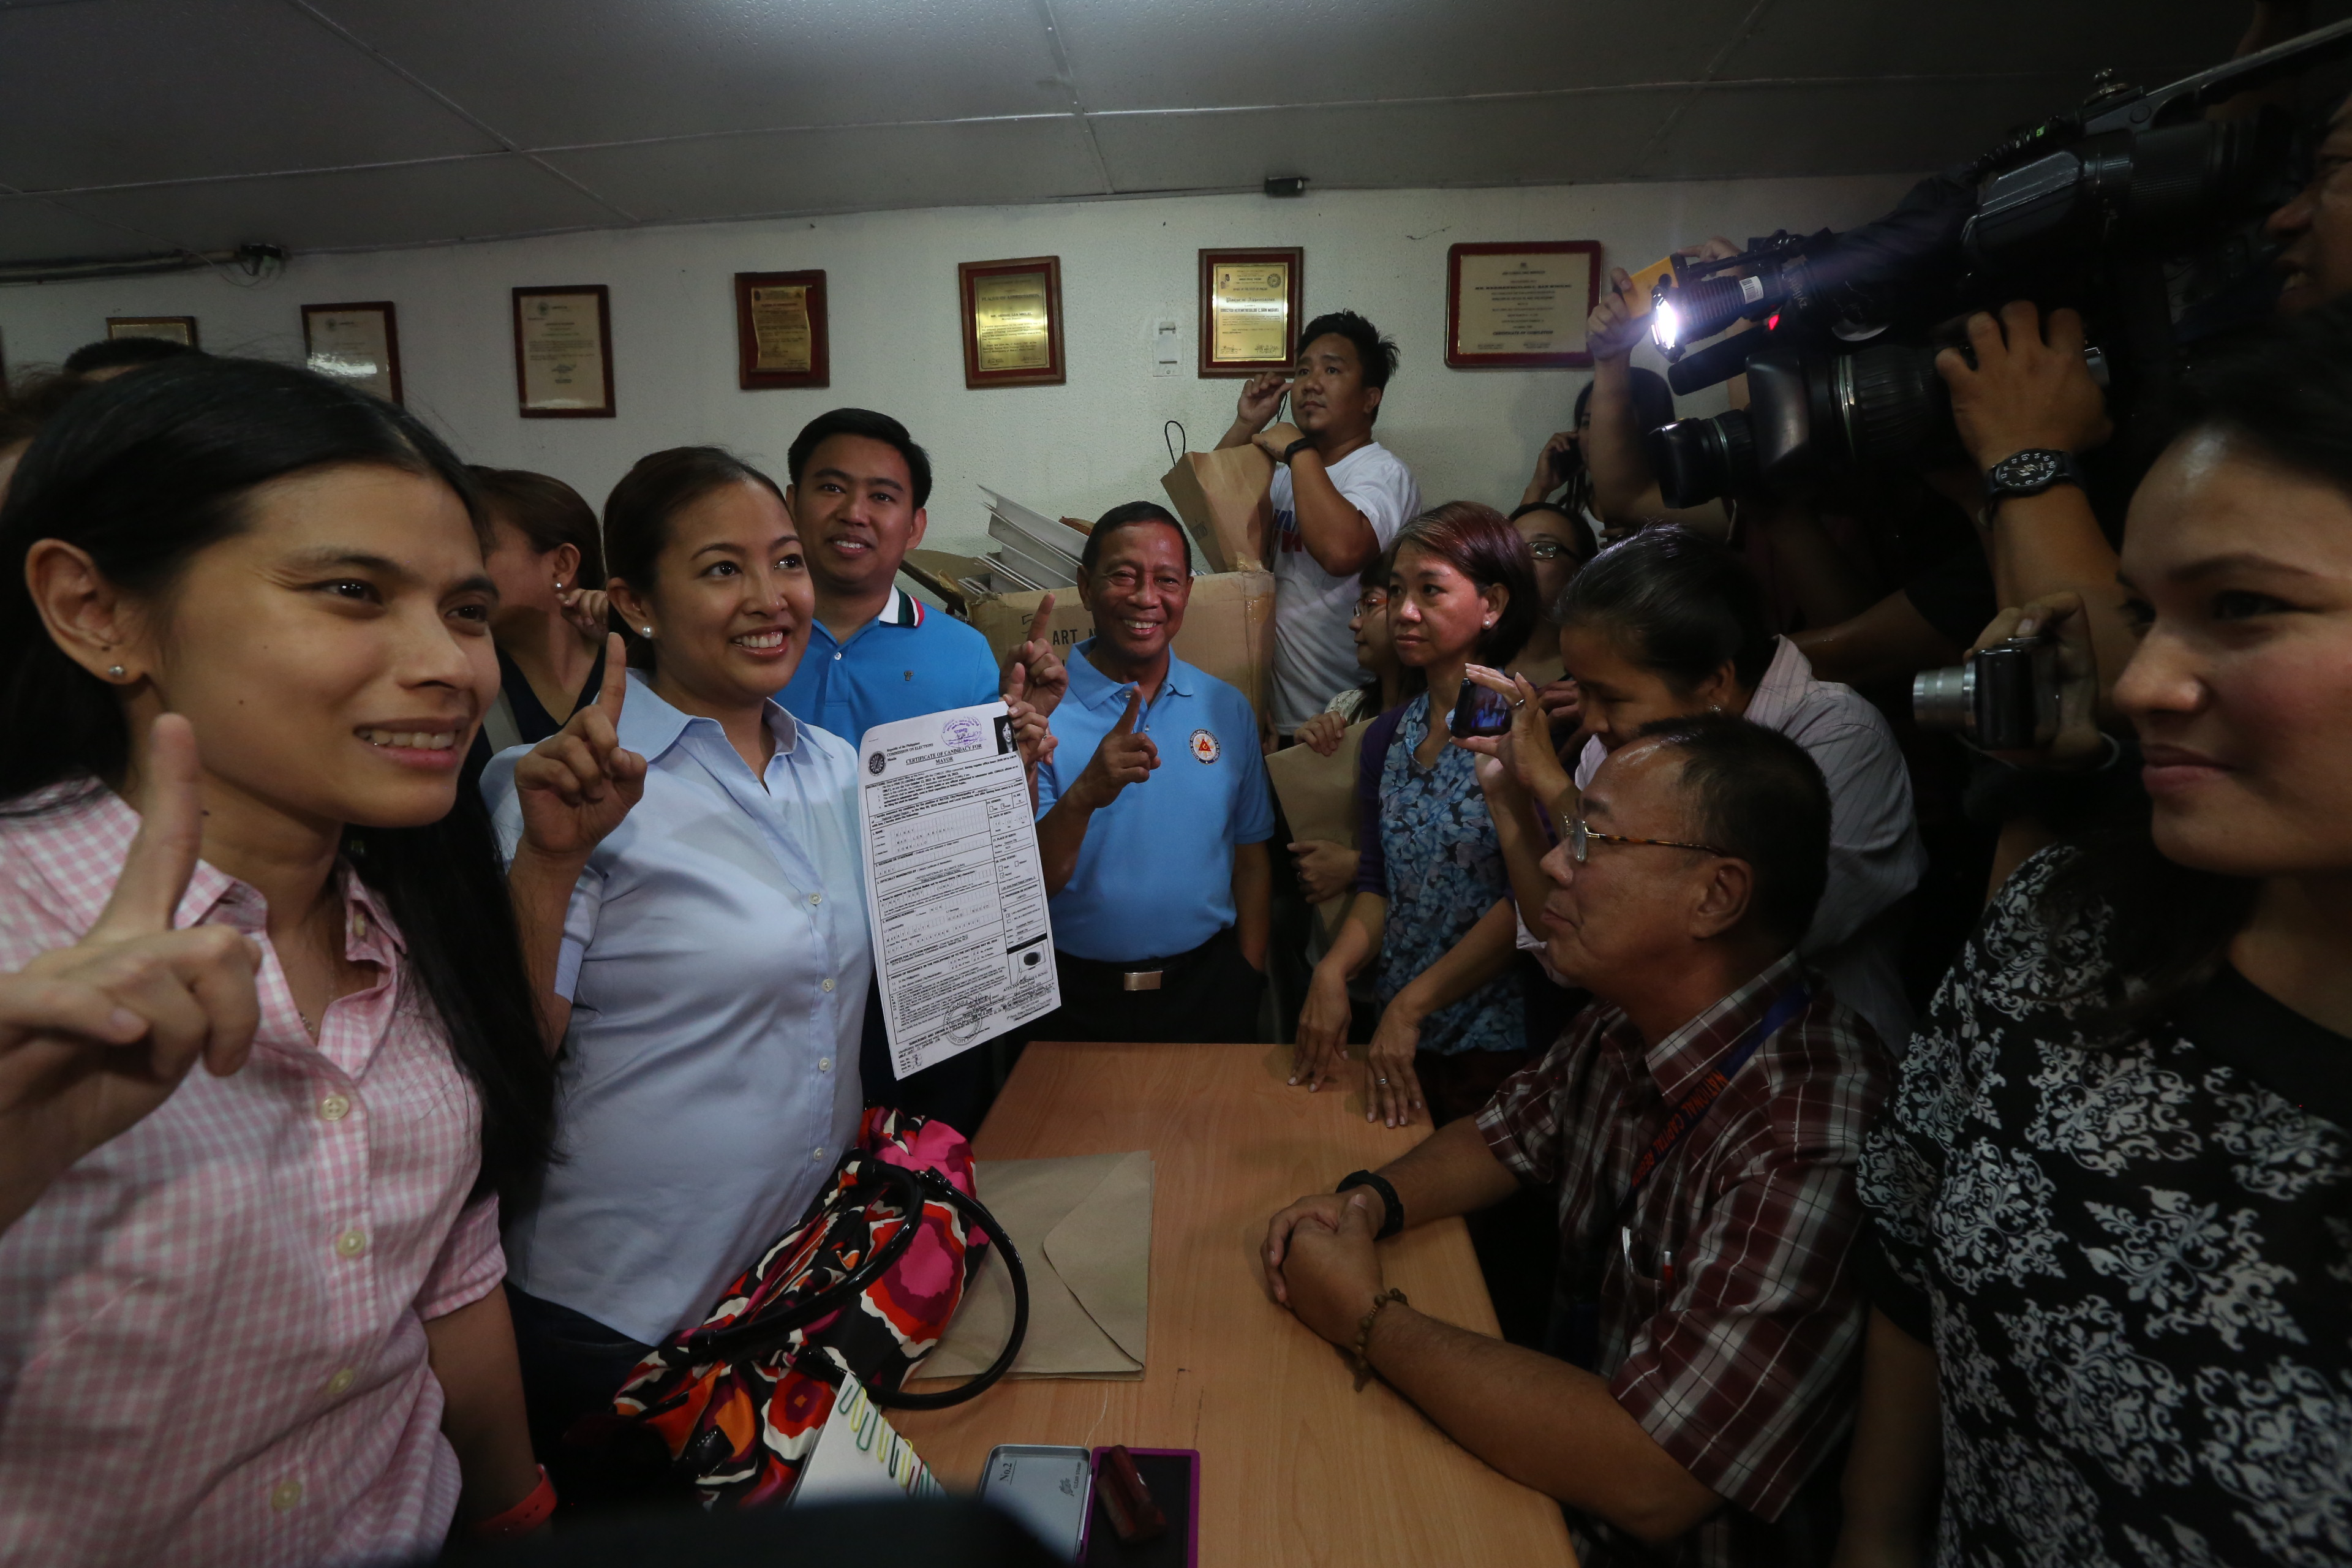 ALL-OUT SUPPORT. VP Binay (center, in blue) accompanies his daughter Abby (2nd from left) as she files her certificate of candidacy (COC) for mayor on October 15. Abby plans to follow her father's footsteps if she wins. Photo by the Office of the Vice President Media Affairs